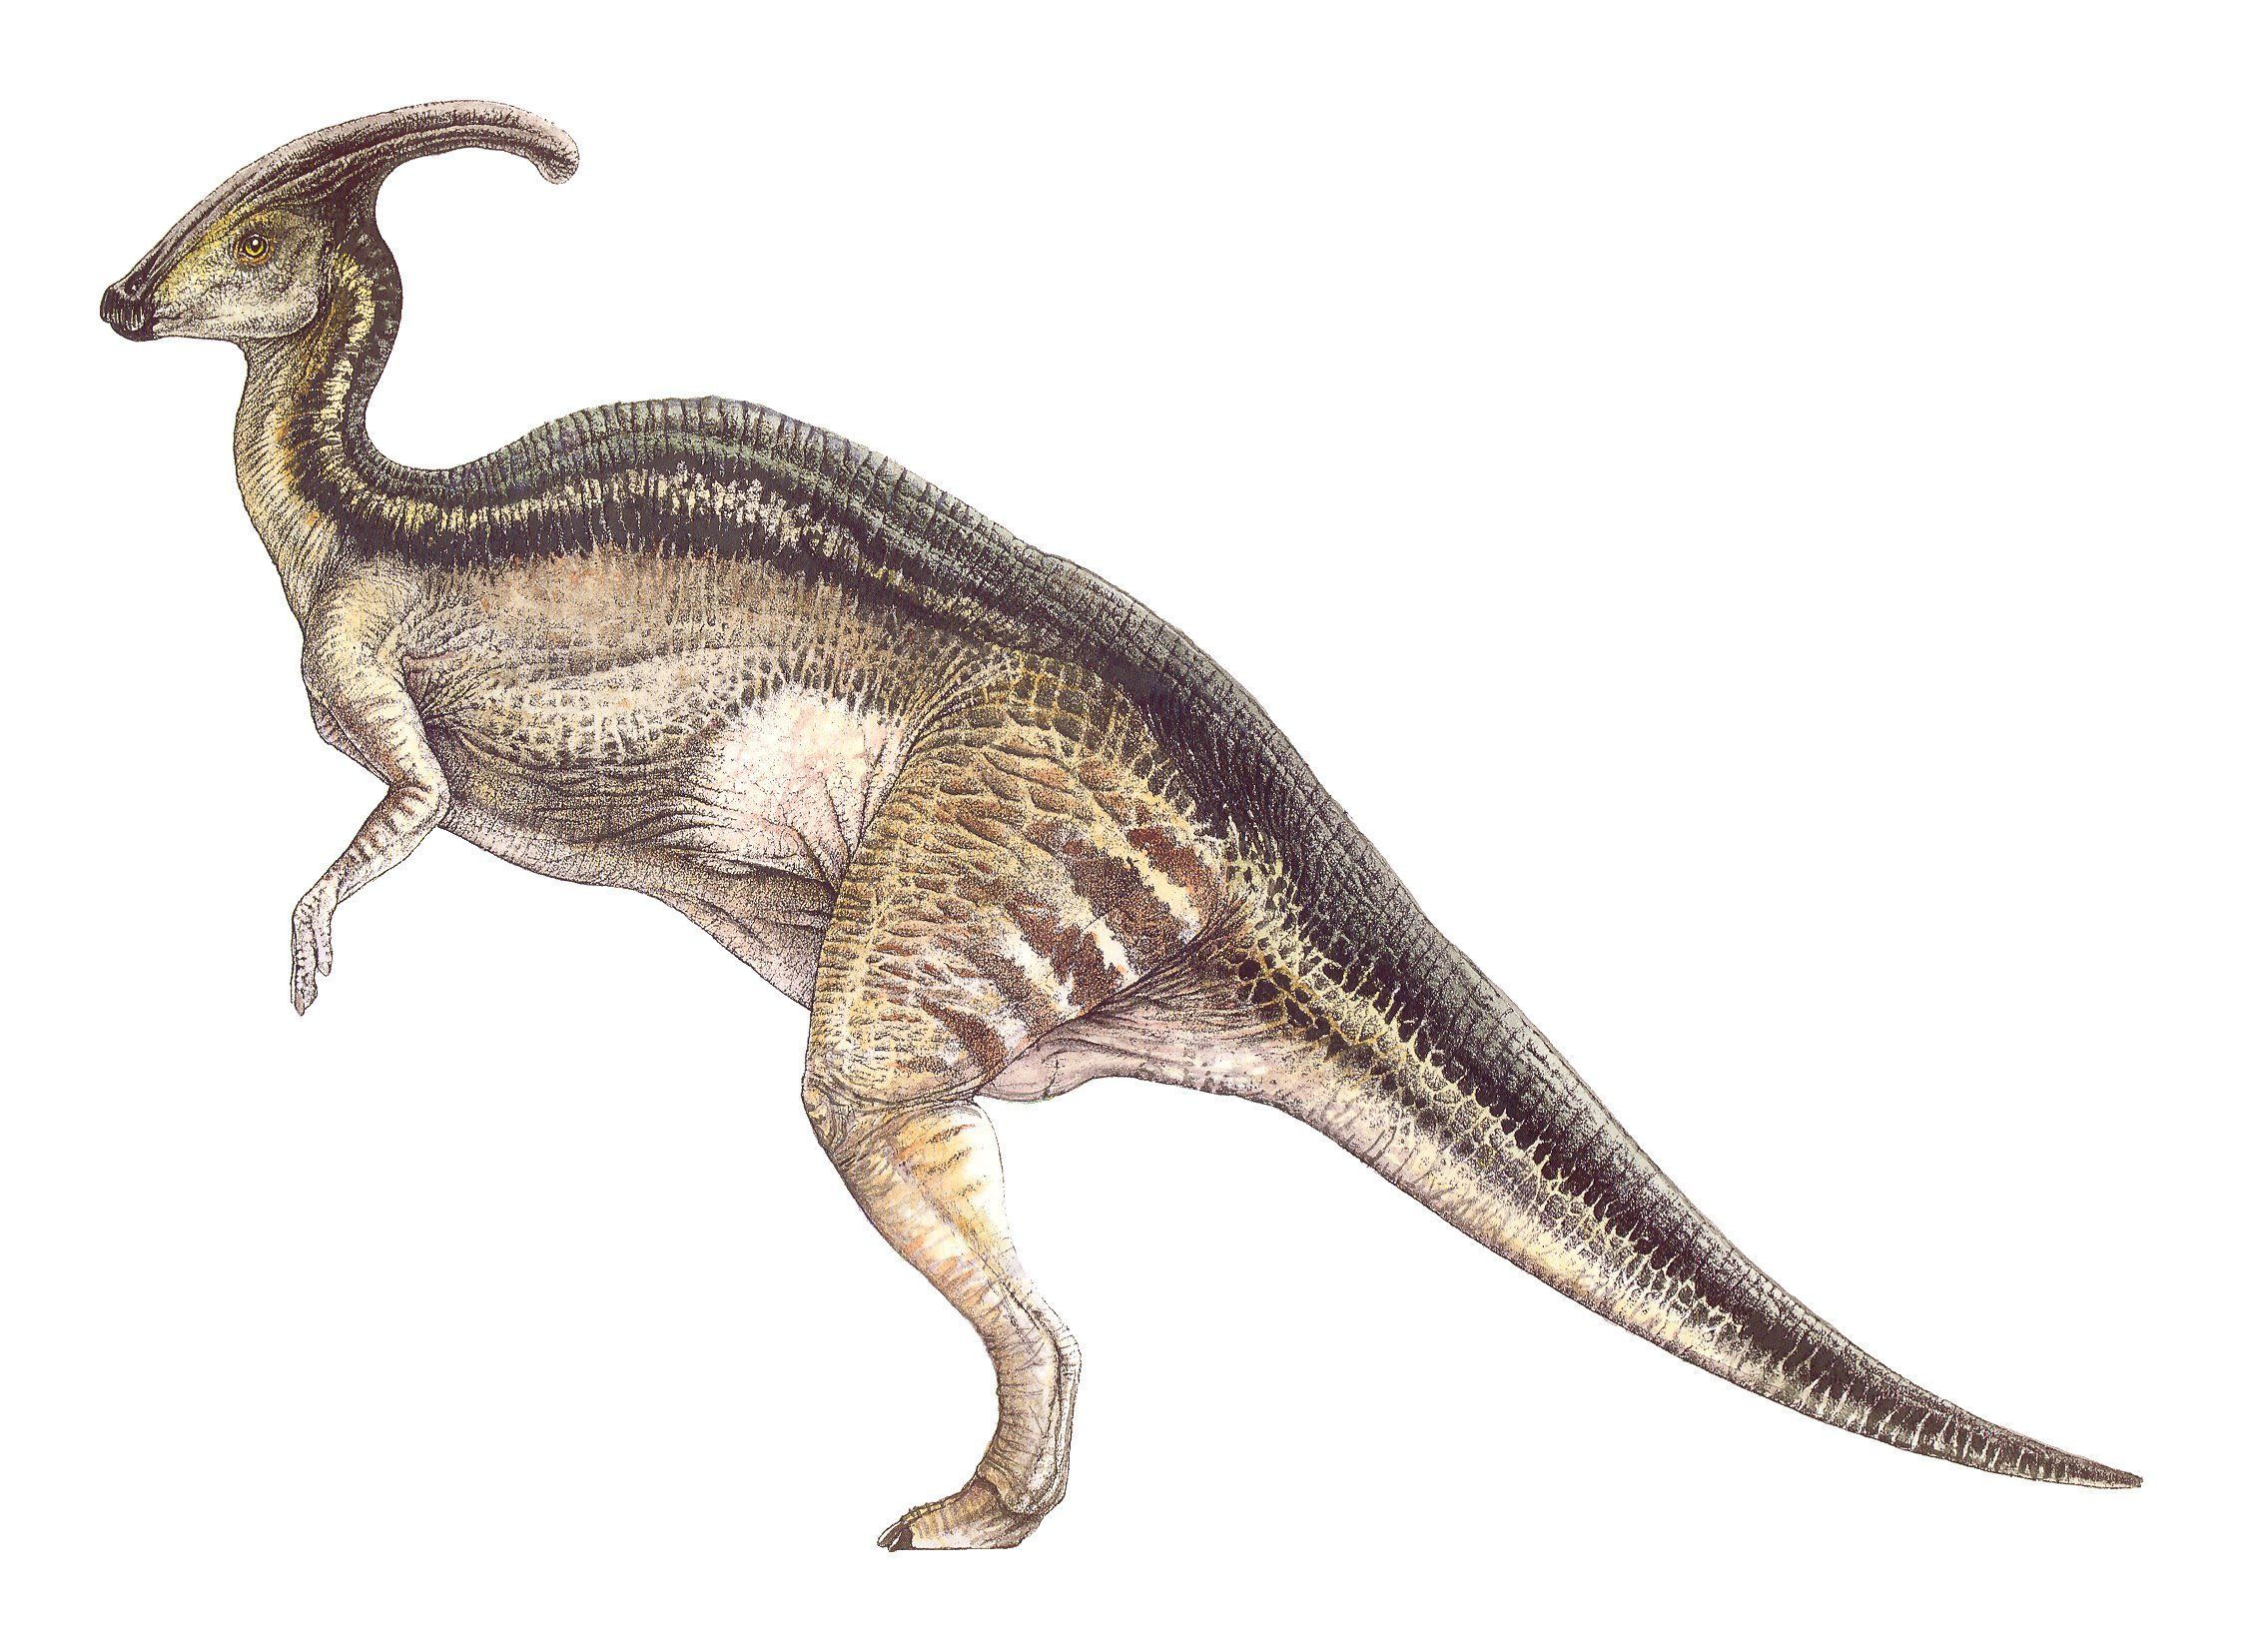 see concept art of the jurassic world dinosaur human hybrids from an earlier version of jurassic park description from i searched for this on